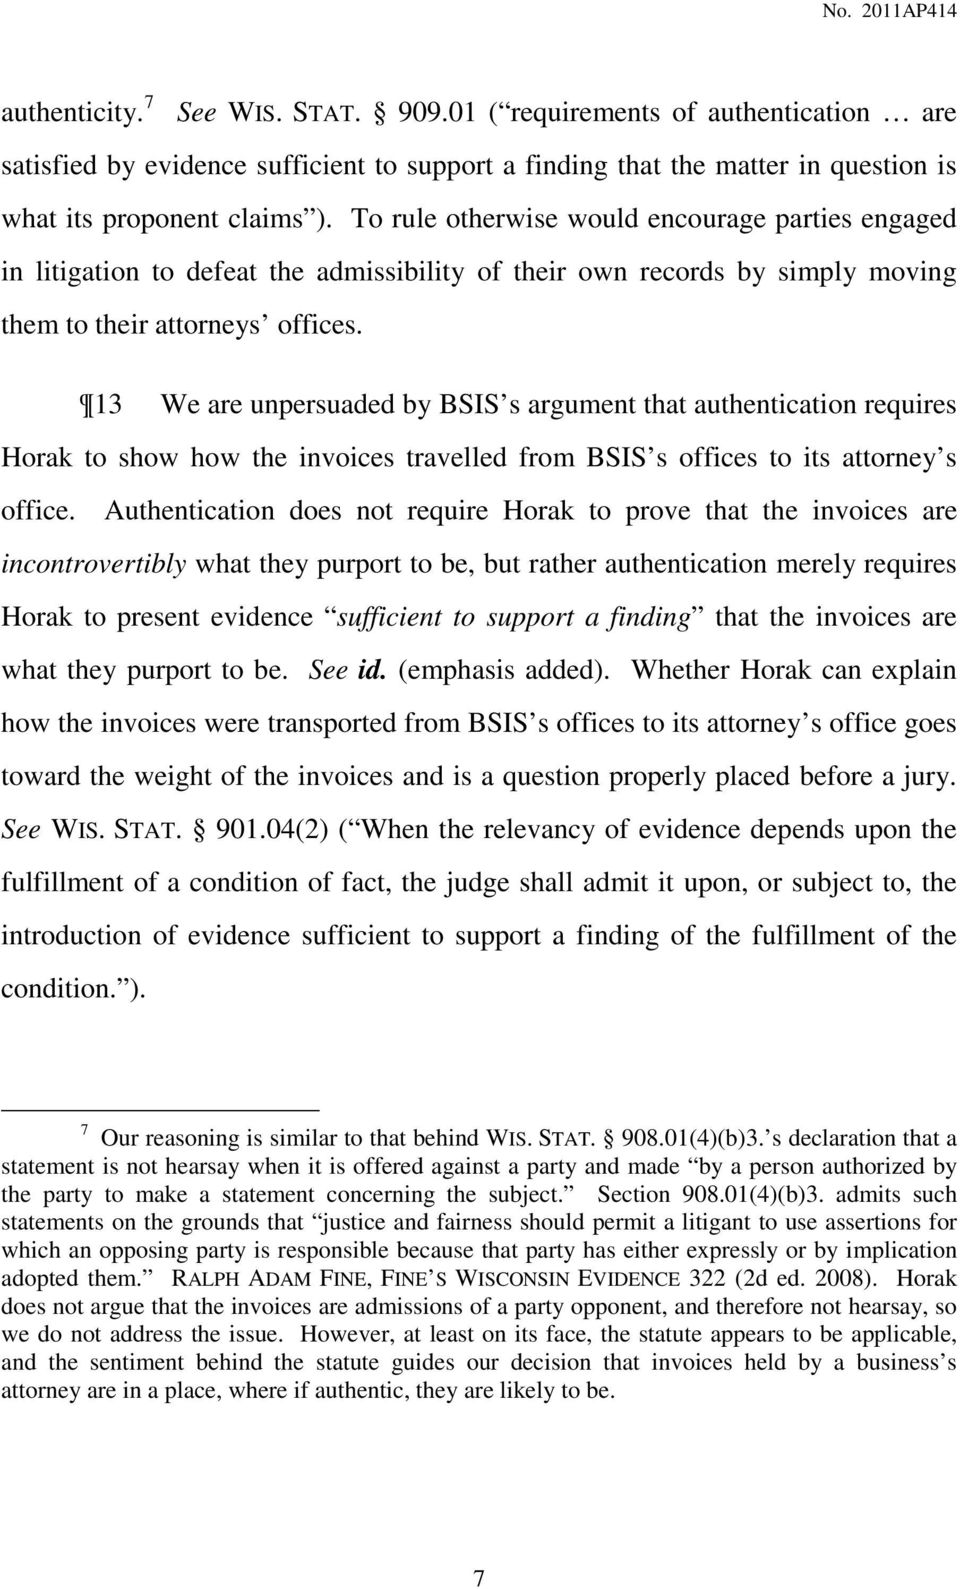 13 We are unpersuaded by BSIS s argument that authentication requires Horak to show how the invoices travelled from BSIS s offices to its attorney s office.